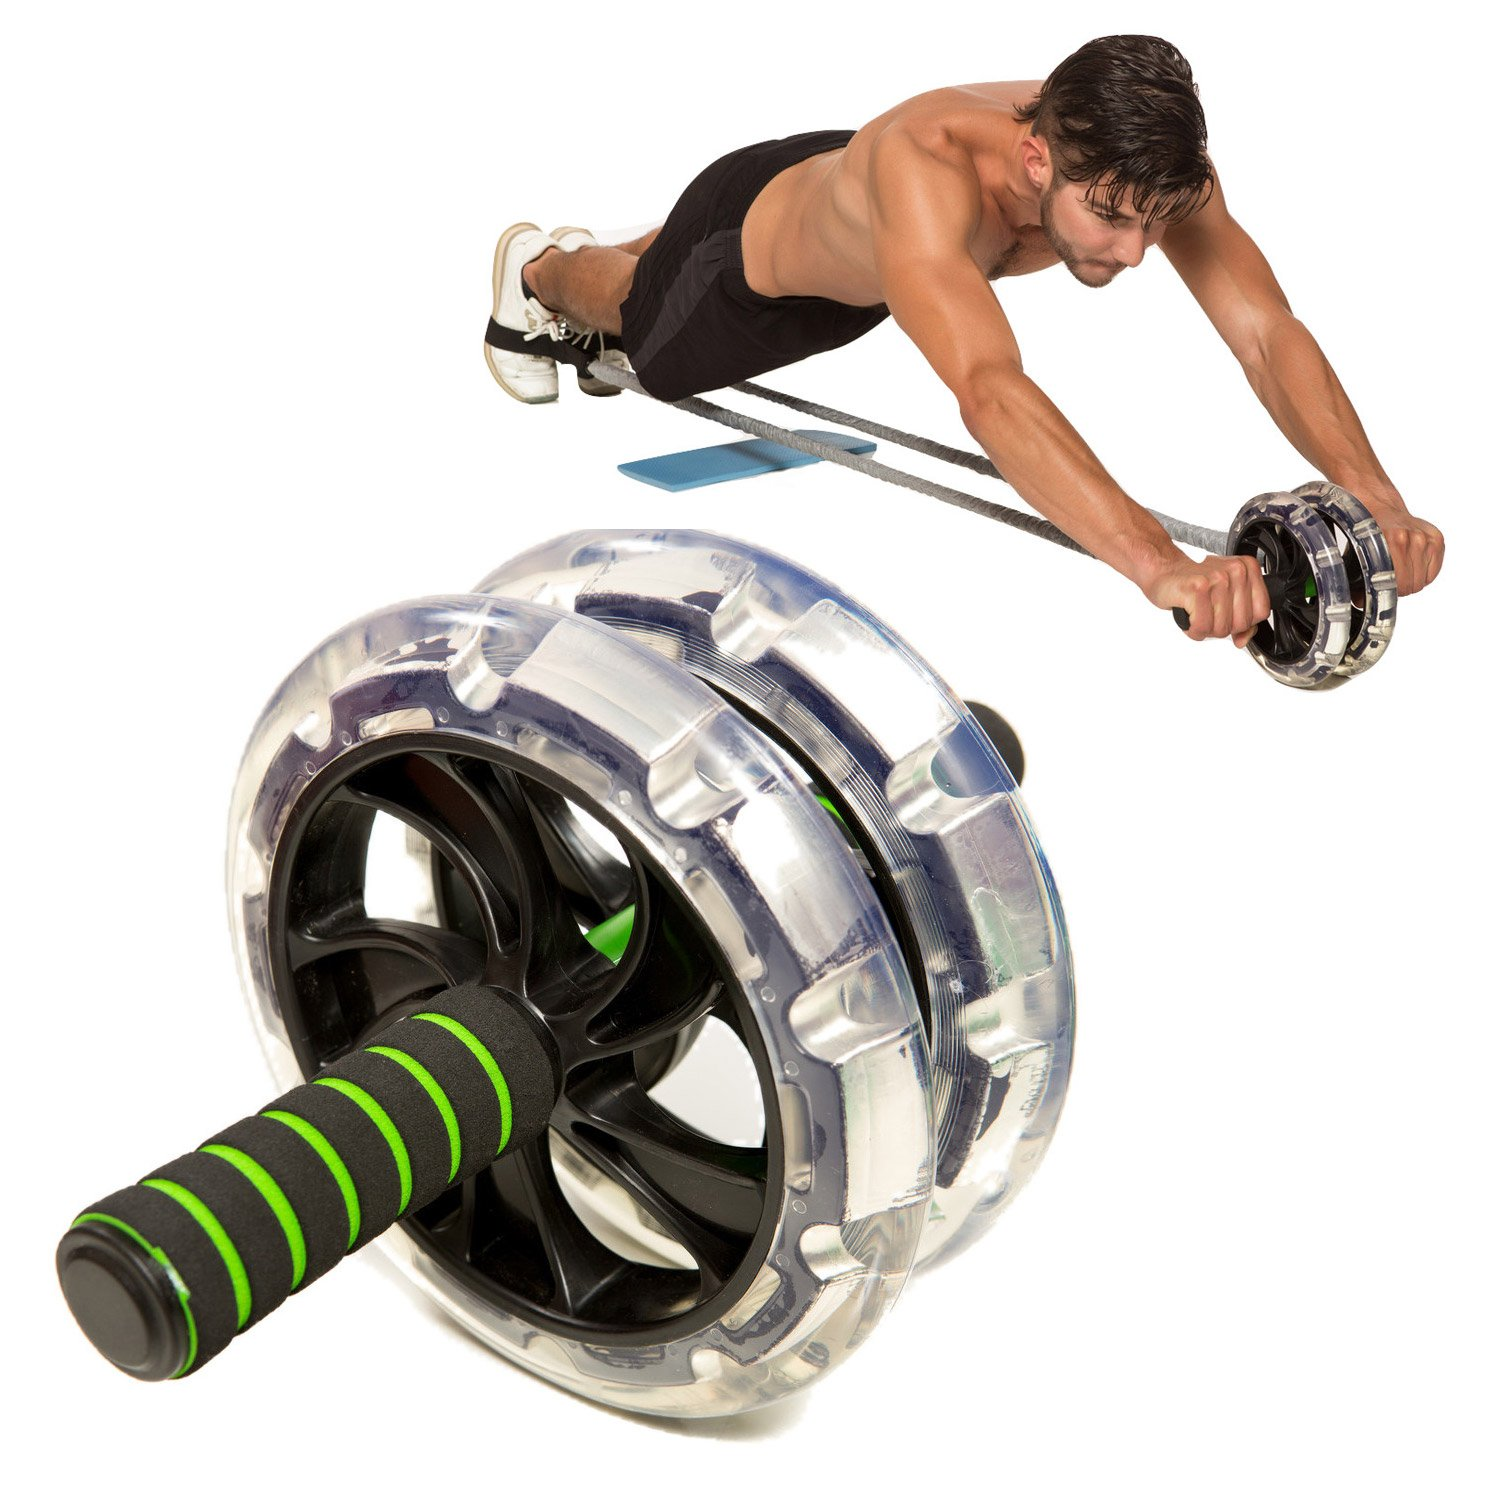 AB-WOW Pro Ab Roller Wheel Best Ab Machine Reviews